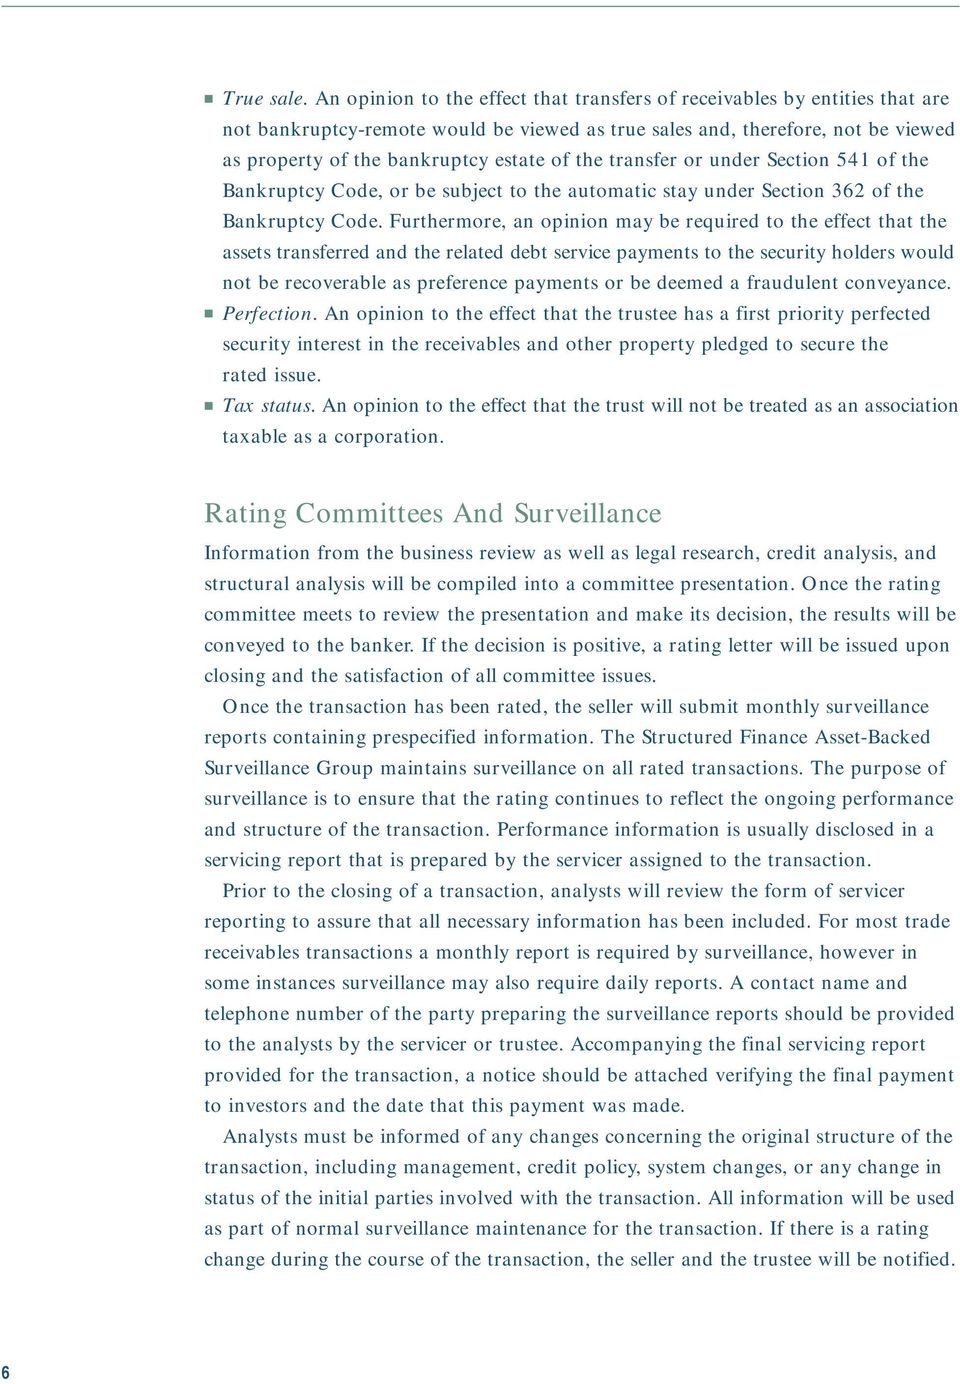 the transfer or under Section 541 of the Bankruptcy Code, or be subject to the automatic stay under Section 362 of the Bankruptcy Code.